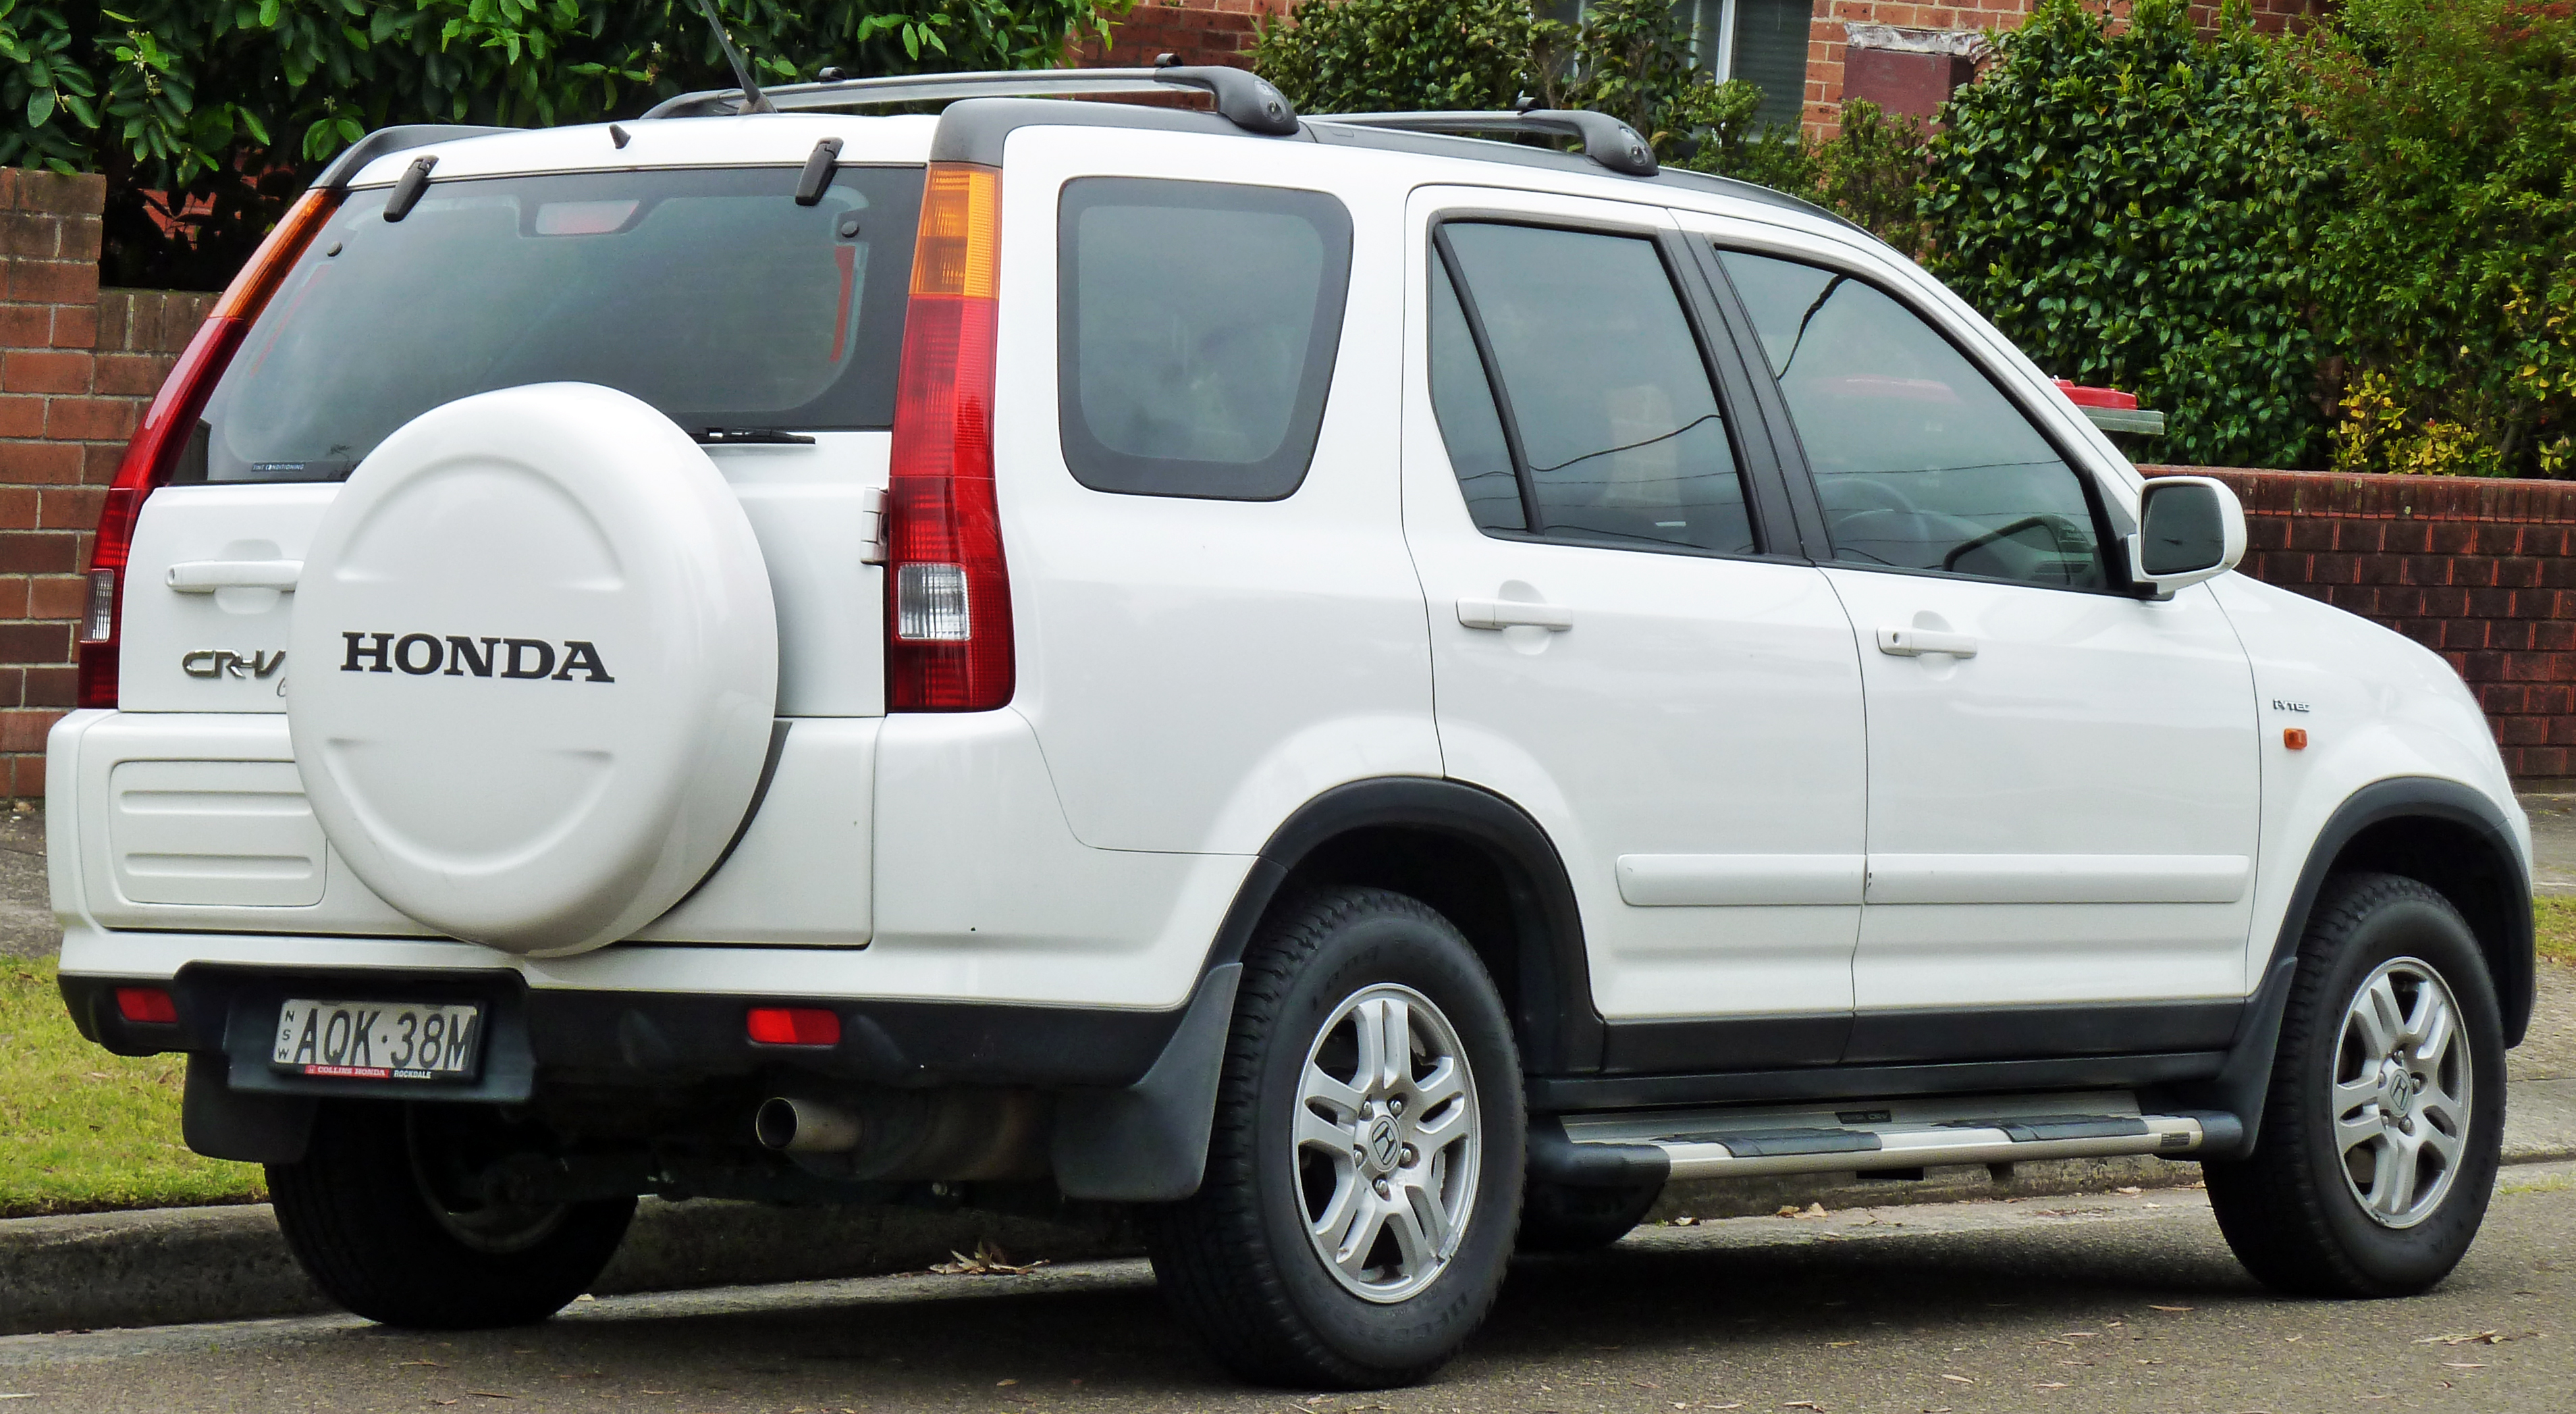 2006 Honda Cr-v iii (re5) - pictures, information and ...